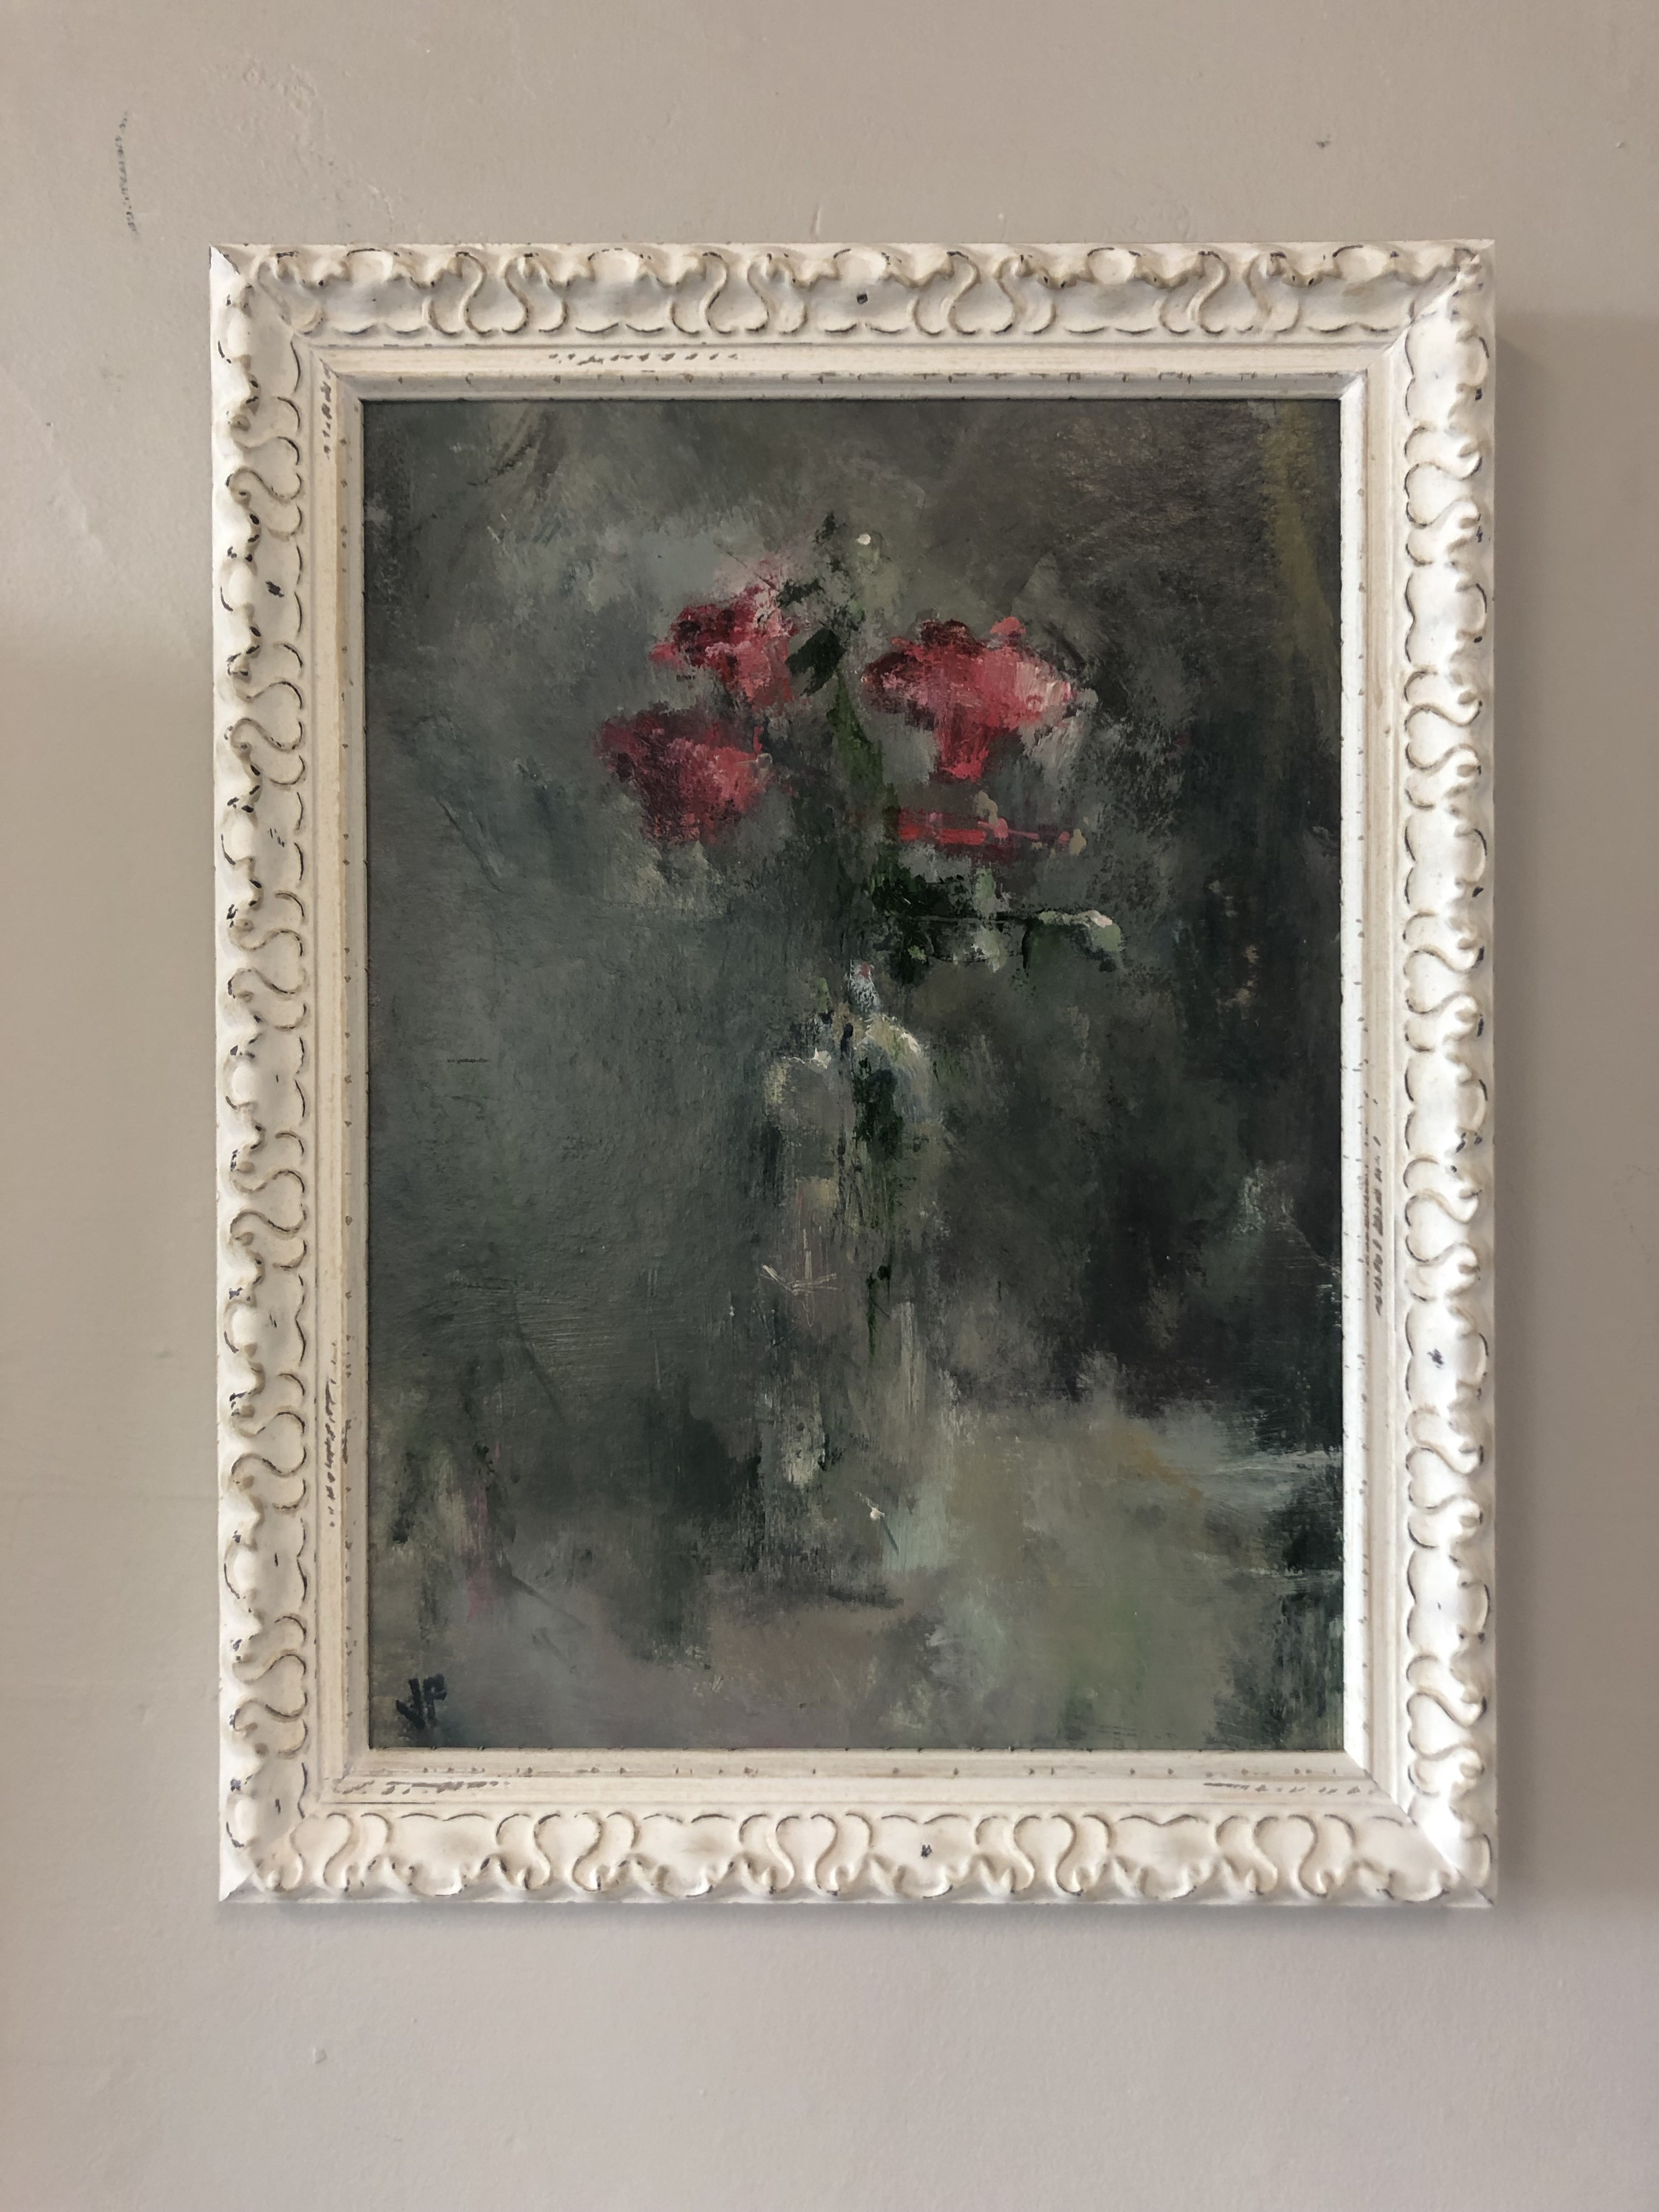 Jemma Powell's contemporary oil painting Pink Roses, painted in an impressionistic style and framed.